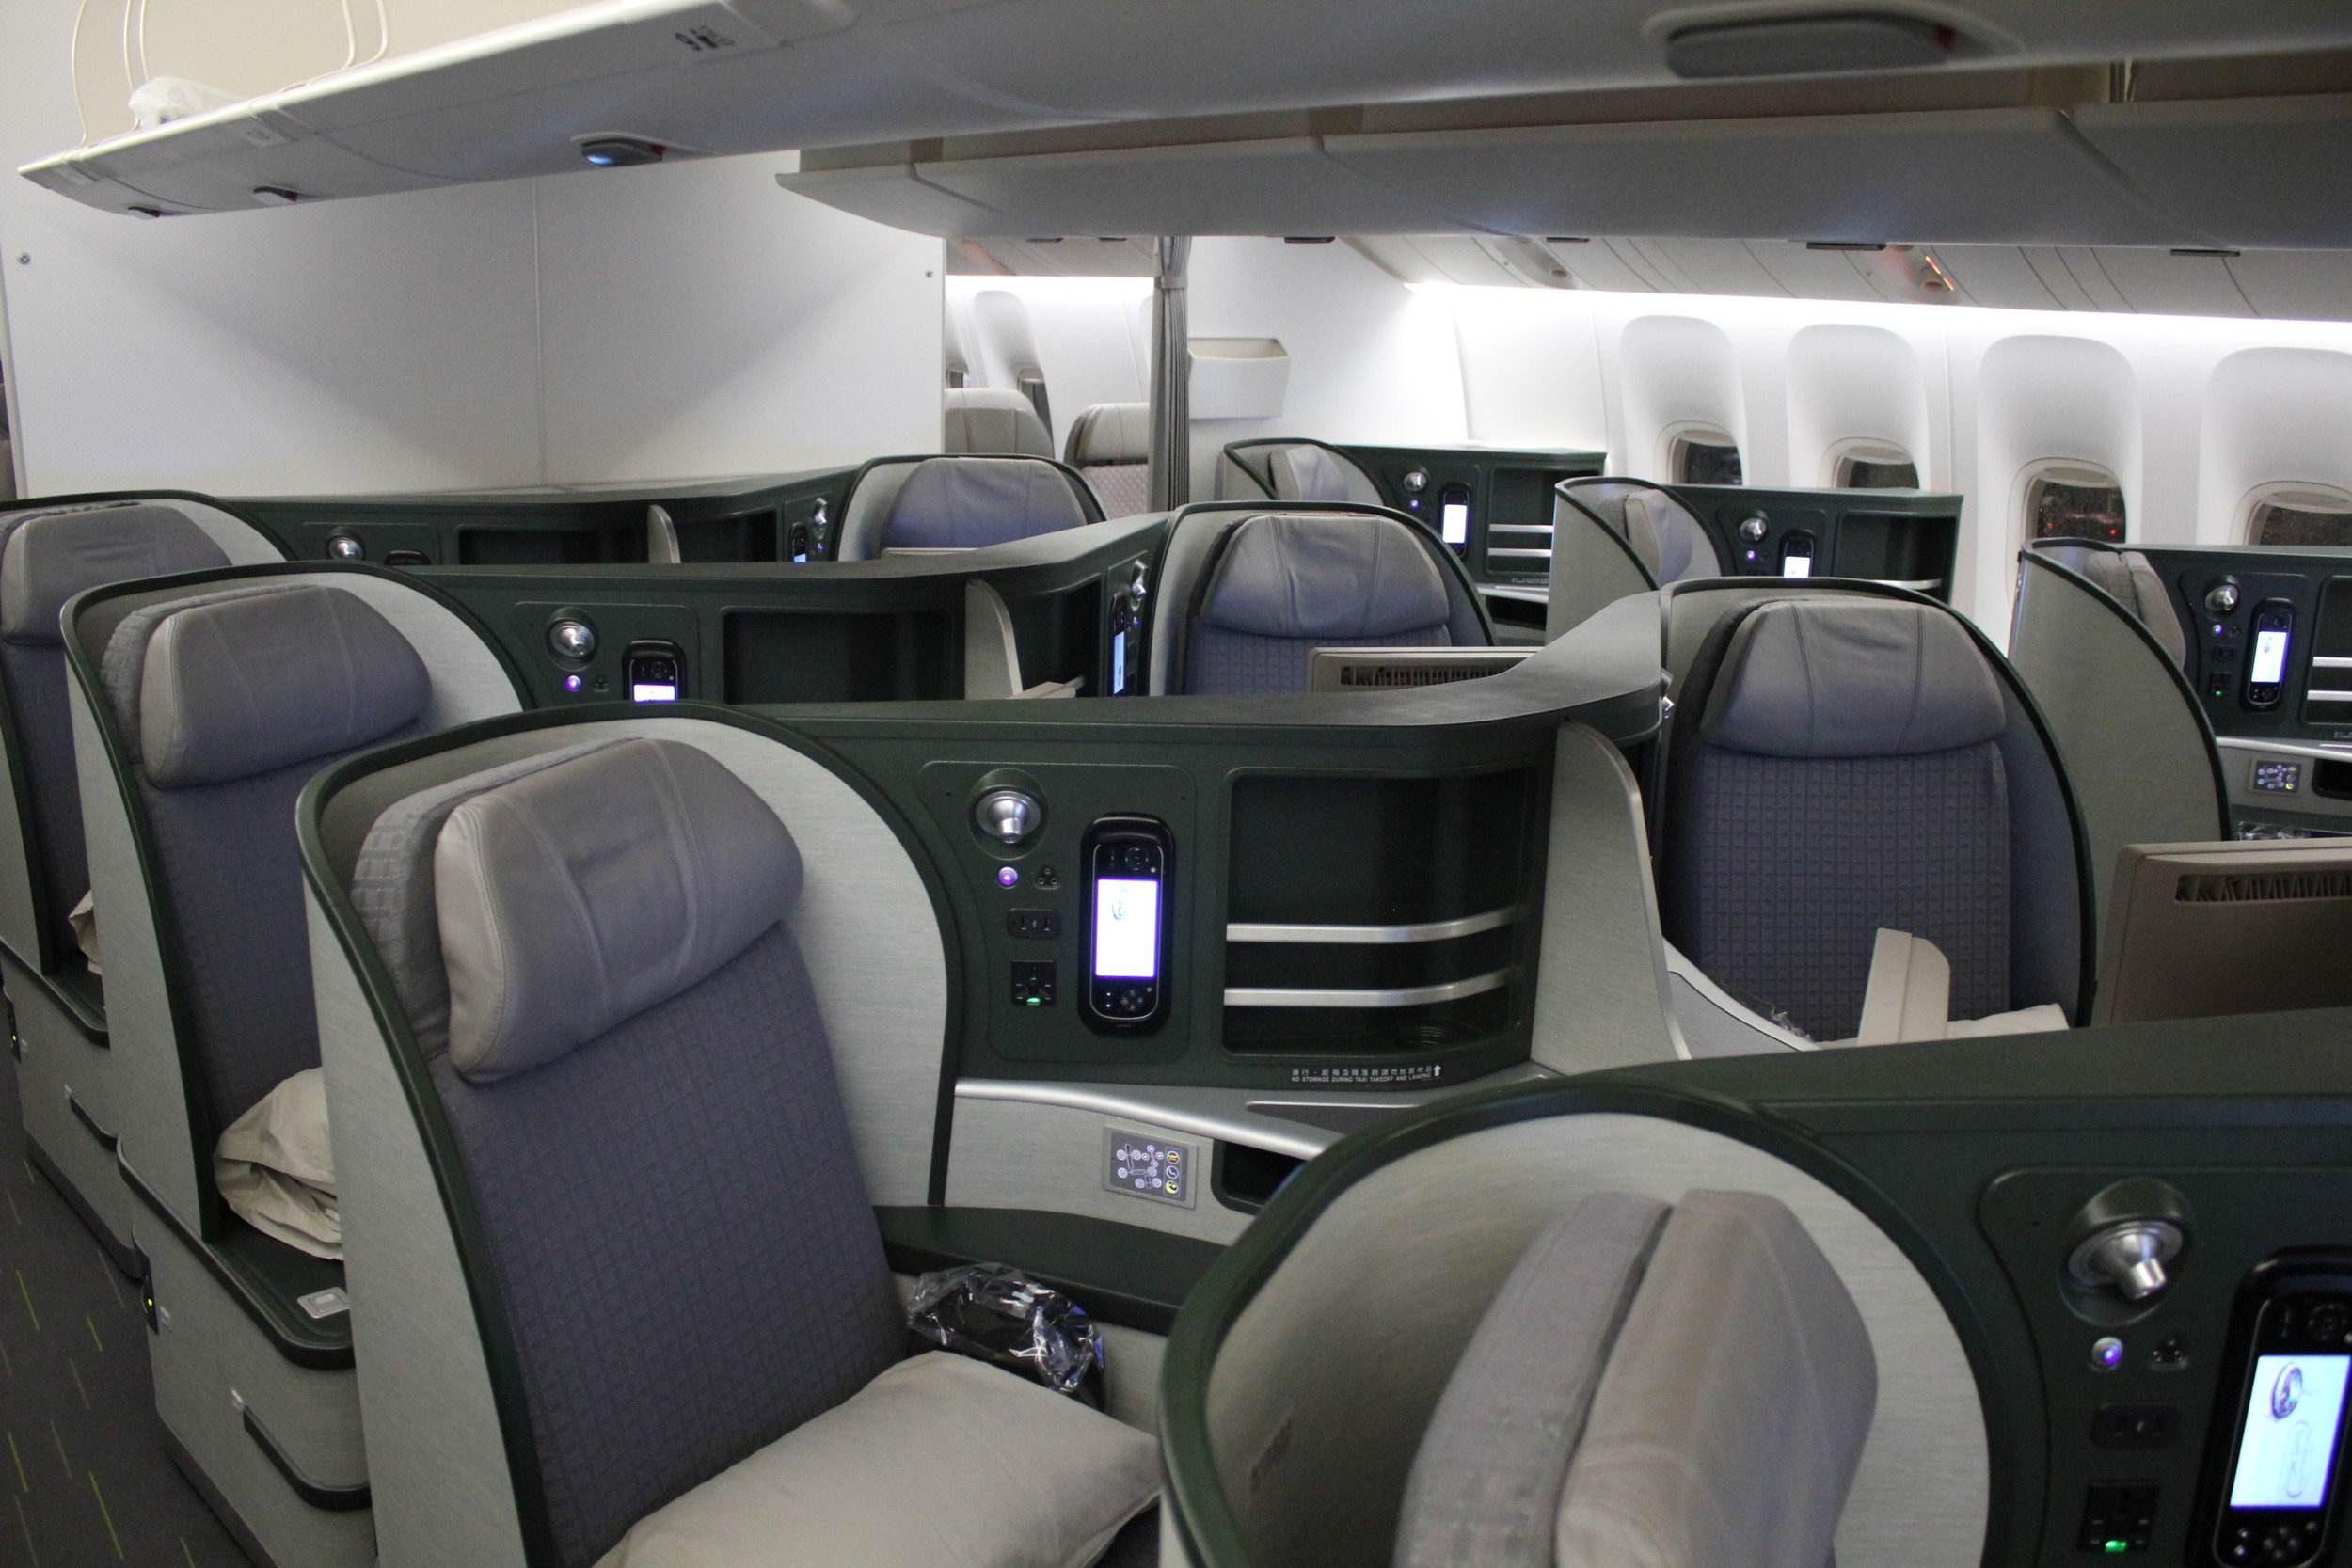 At the Intermediate level, top-notch business class flights are well within reach.